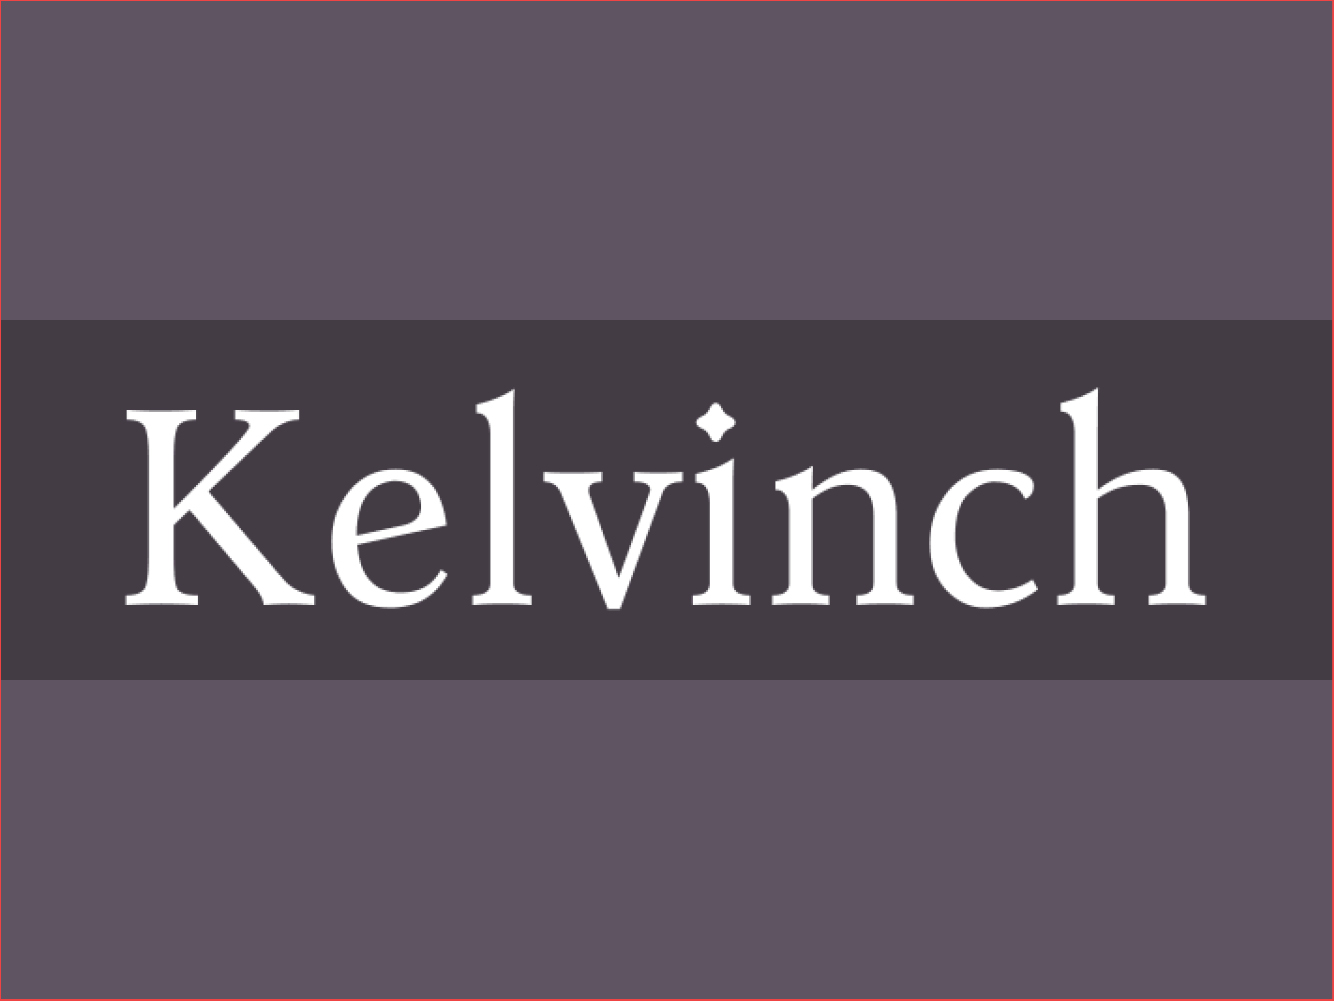 Kelvinch